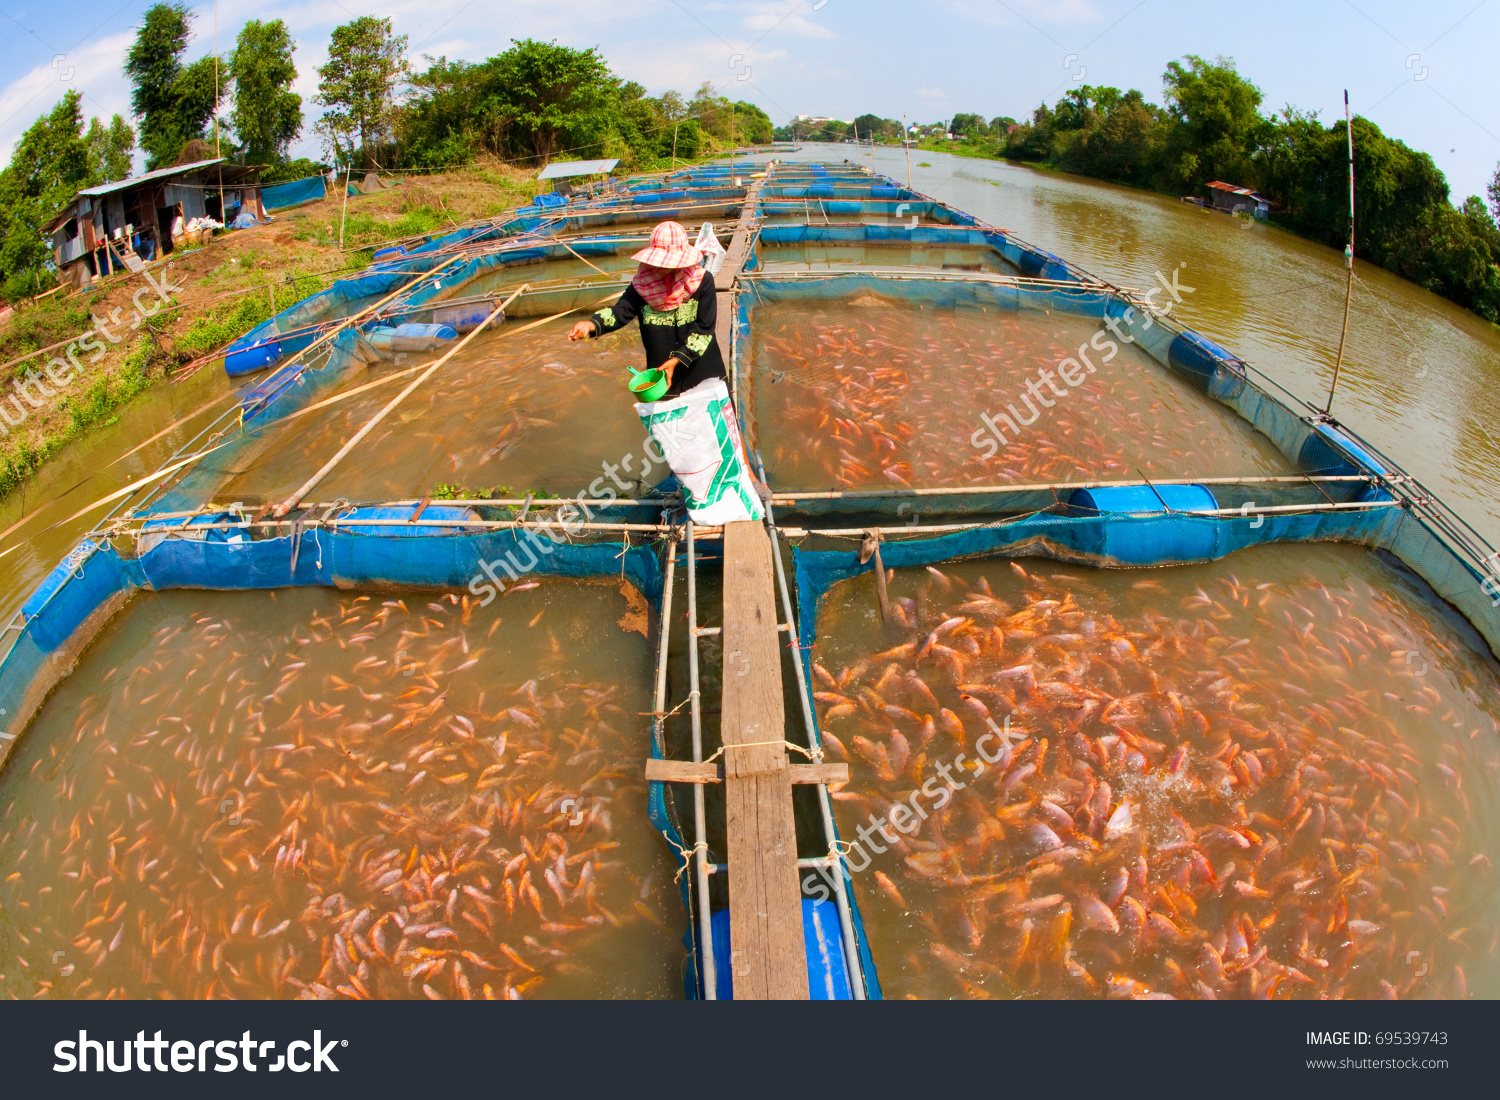 Fish Farm Located Thai Country Stock Photo 69539743.